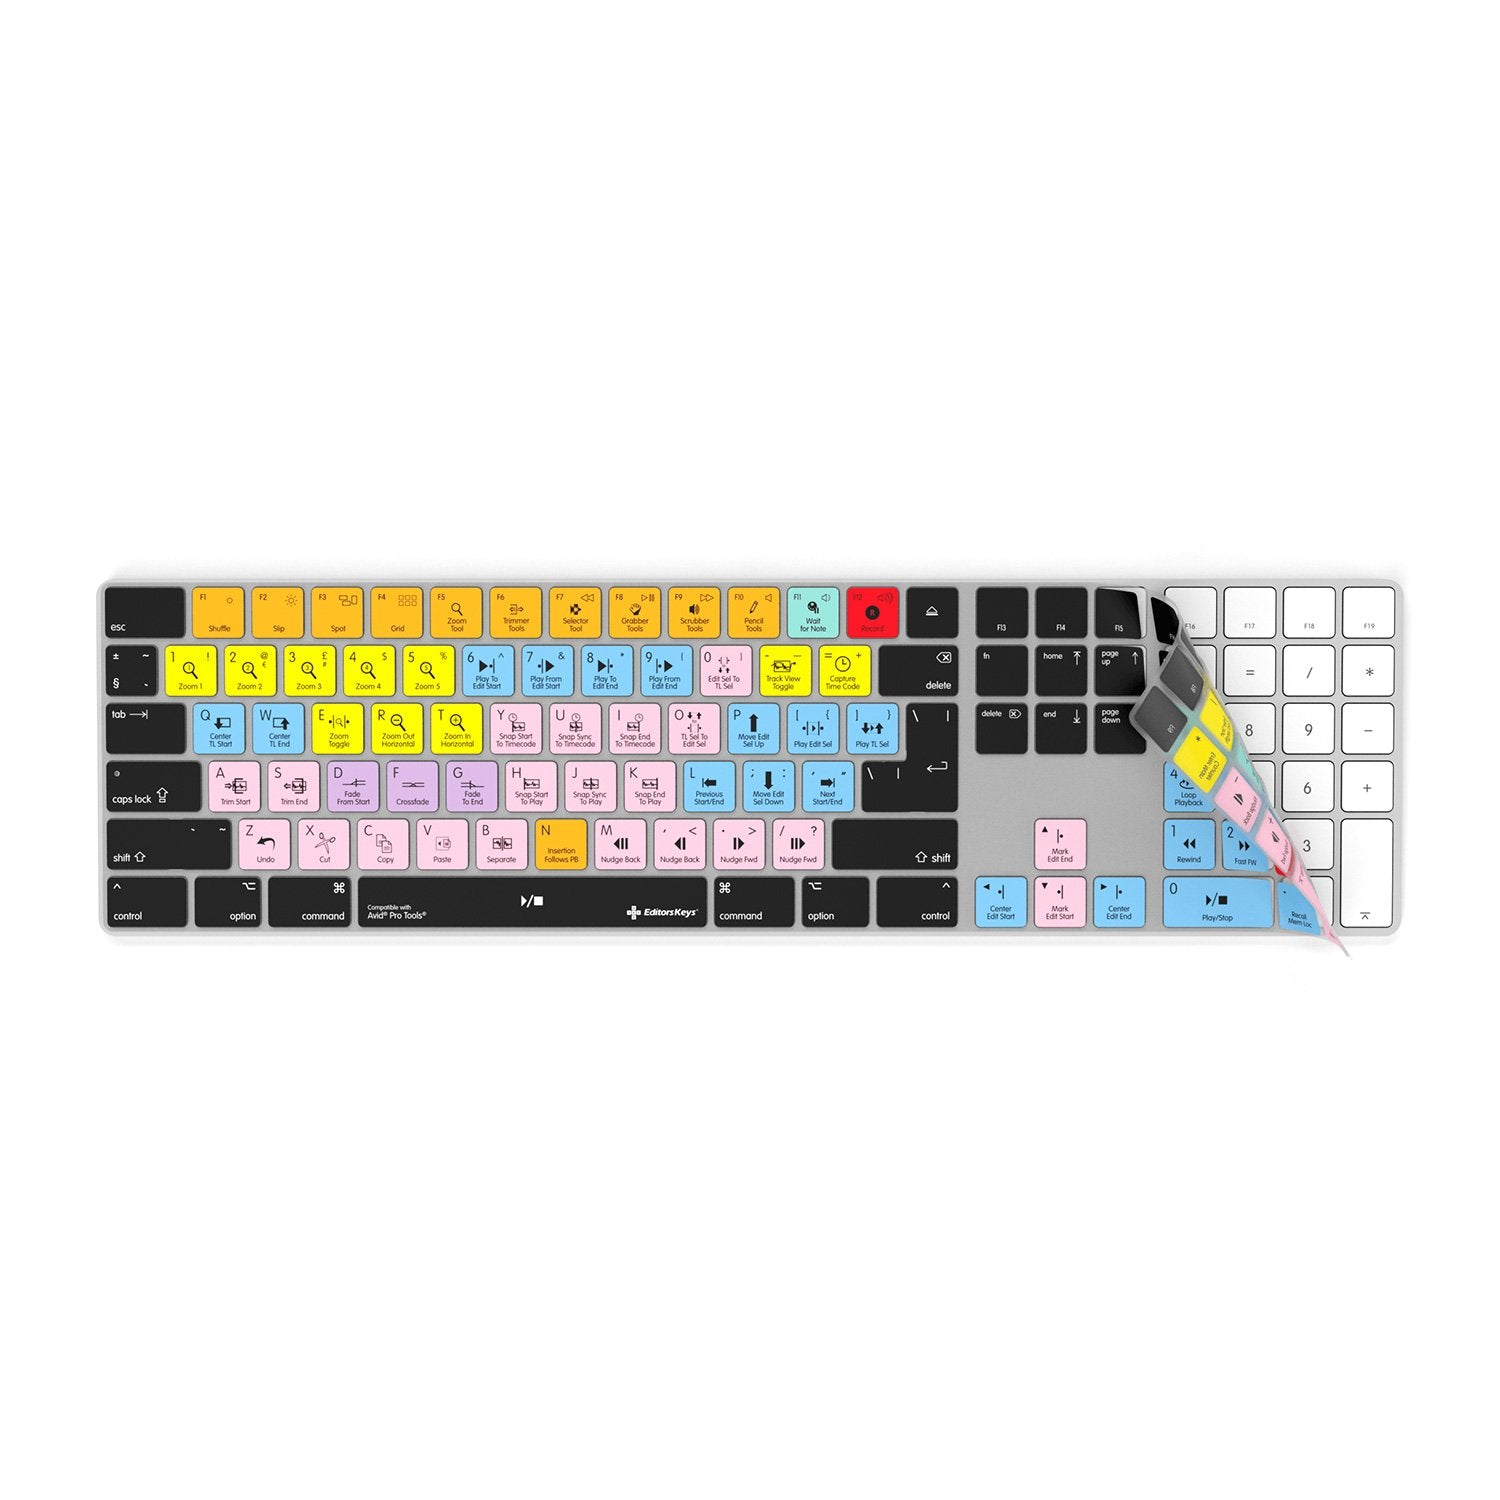 Pro Tools Keyboard cover for Apple Magic Keyboard with Numeric Pad